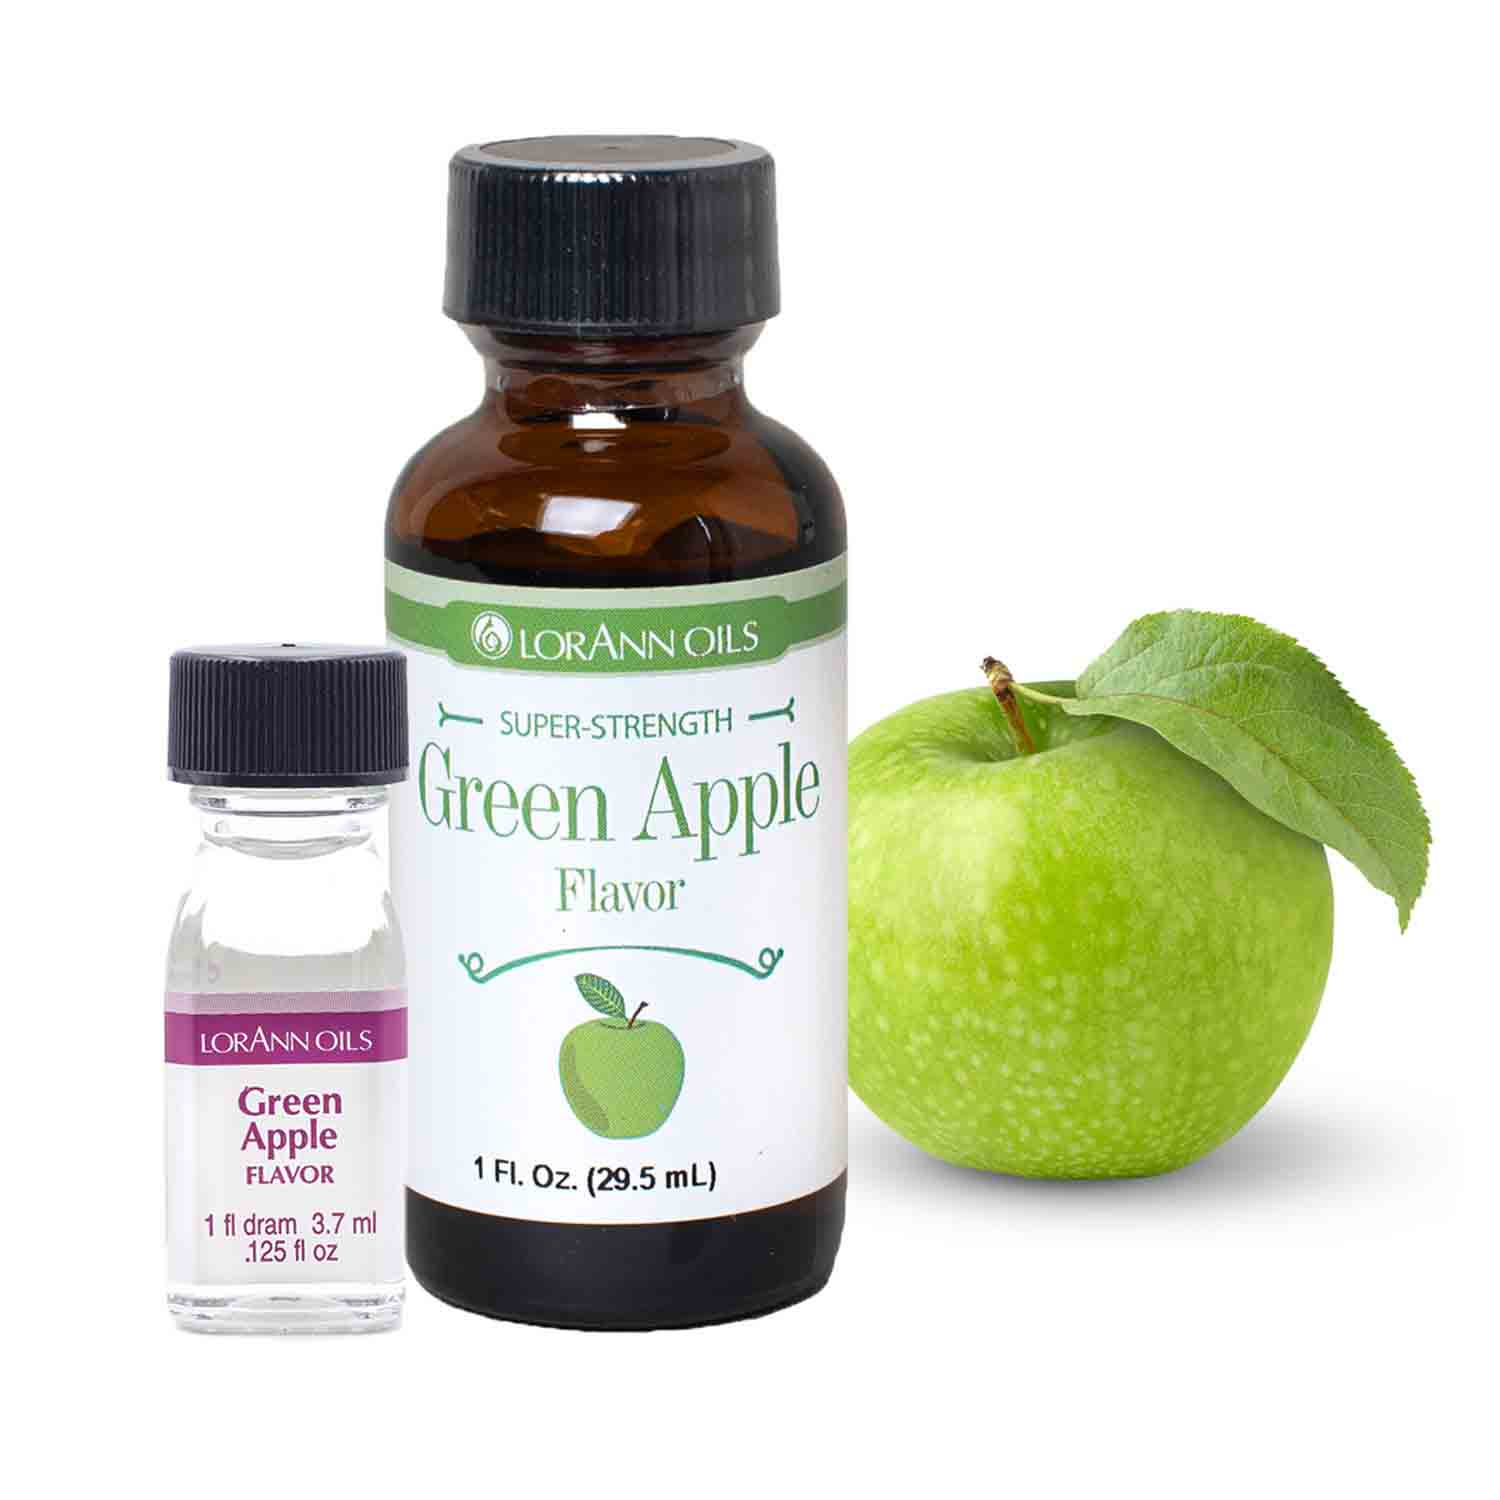 Green Apple LorAnn Super-Strength Flavor